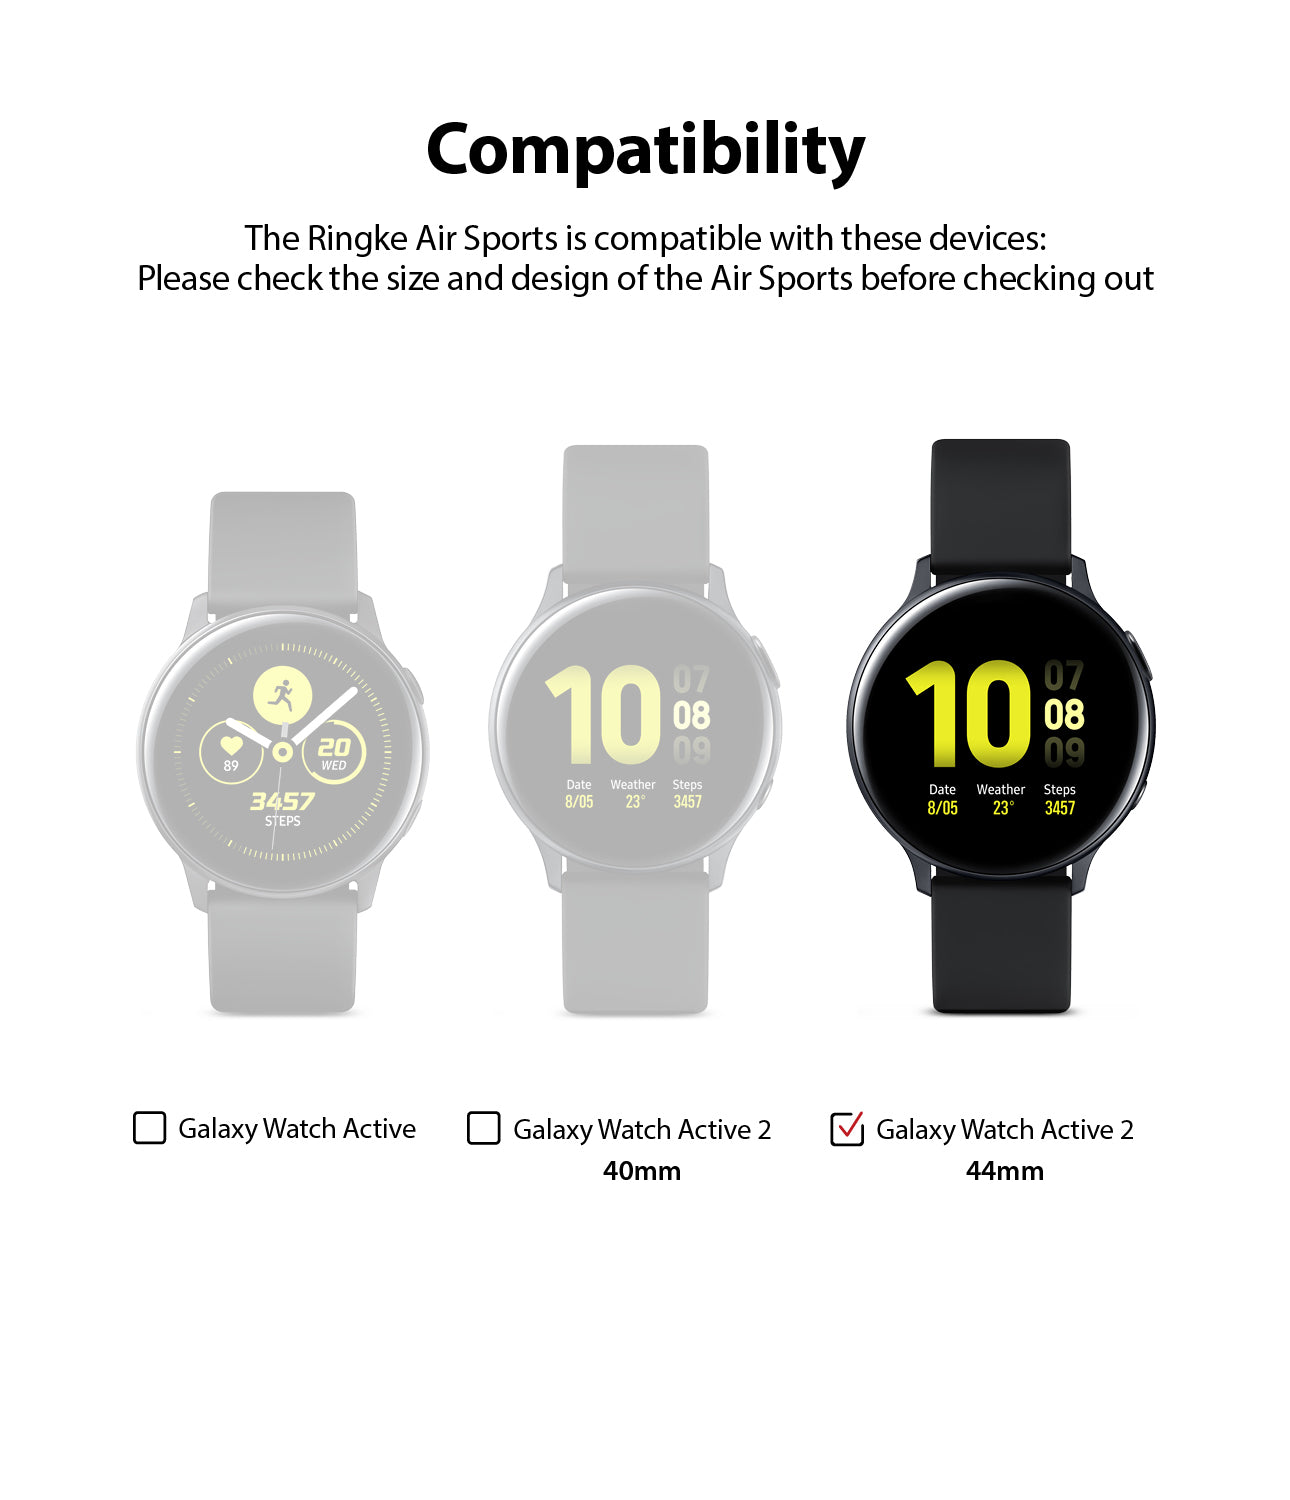 only compatible with galaxy watch active 2 44mm